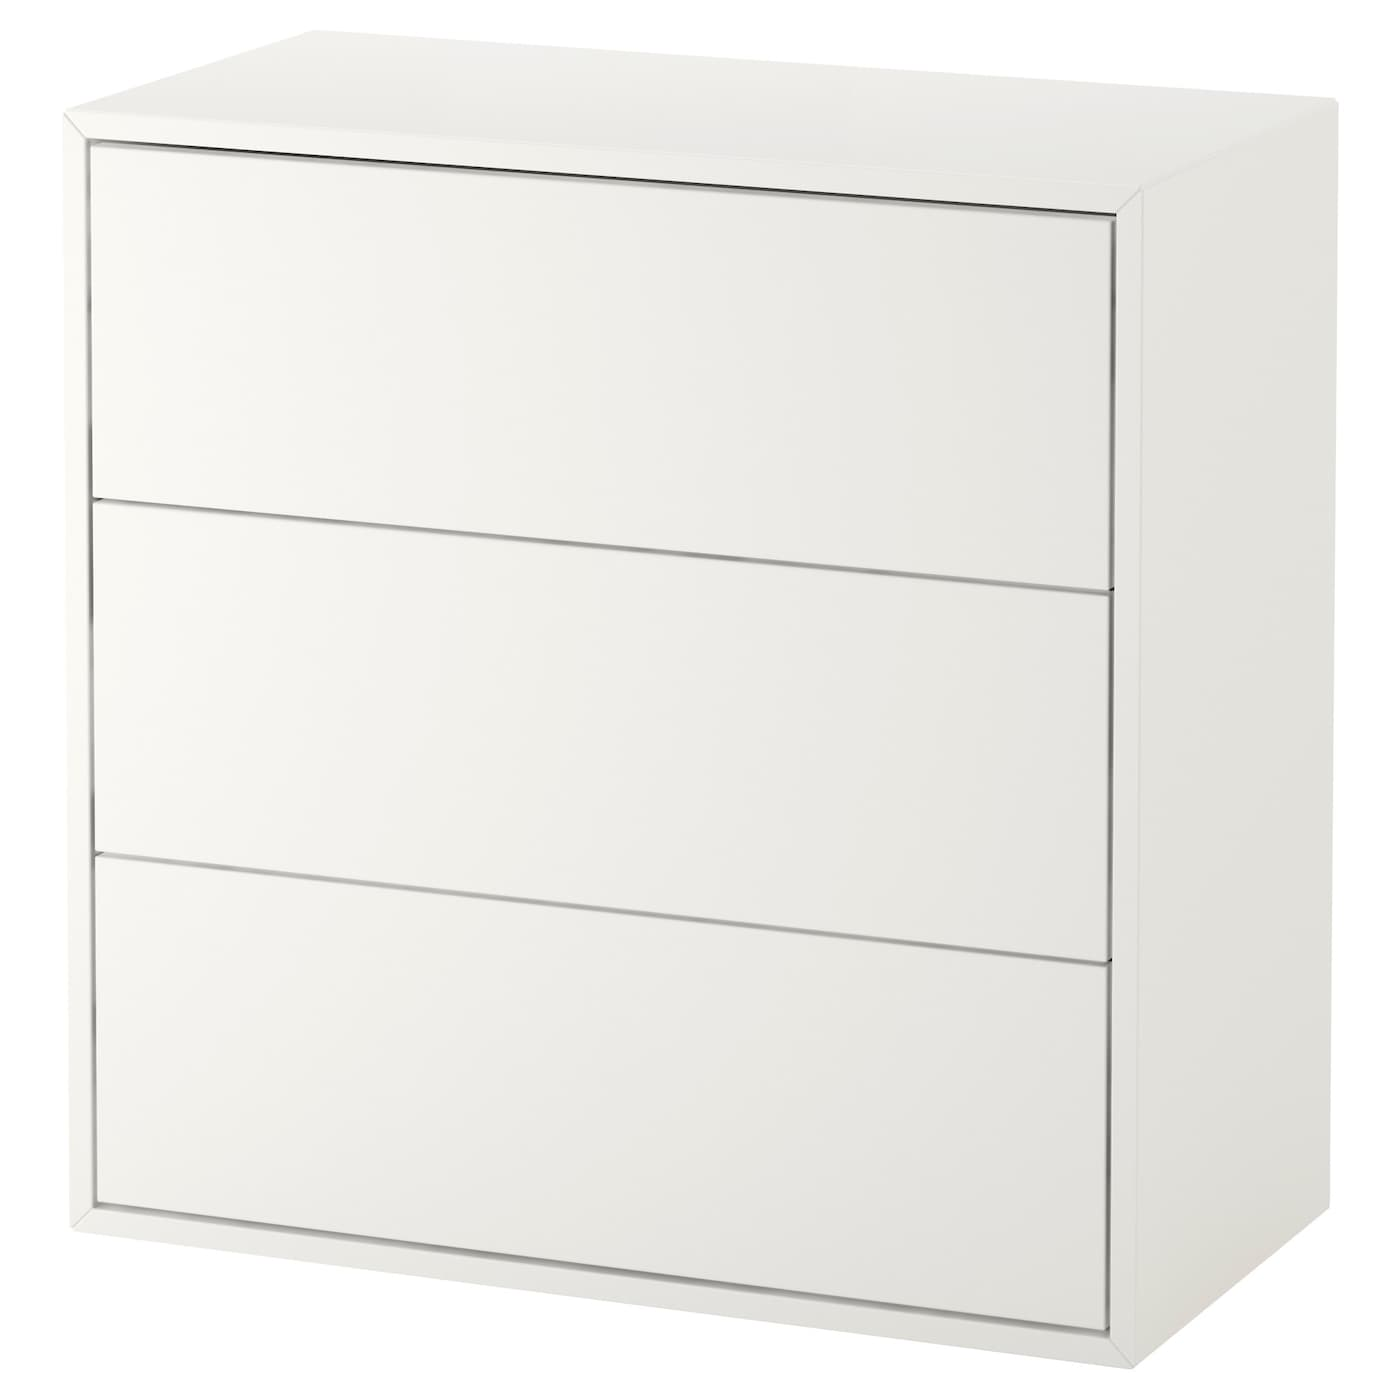 file select mobile drawer sauder products cabinet filing